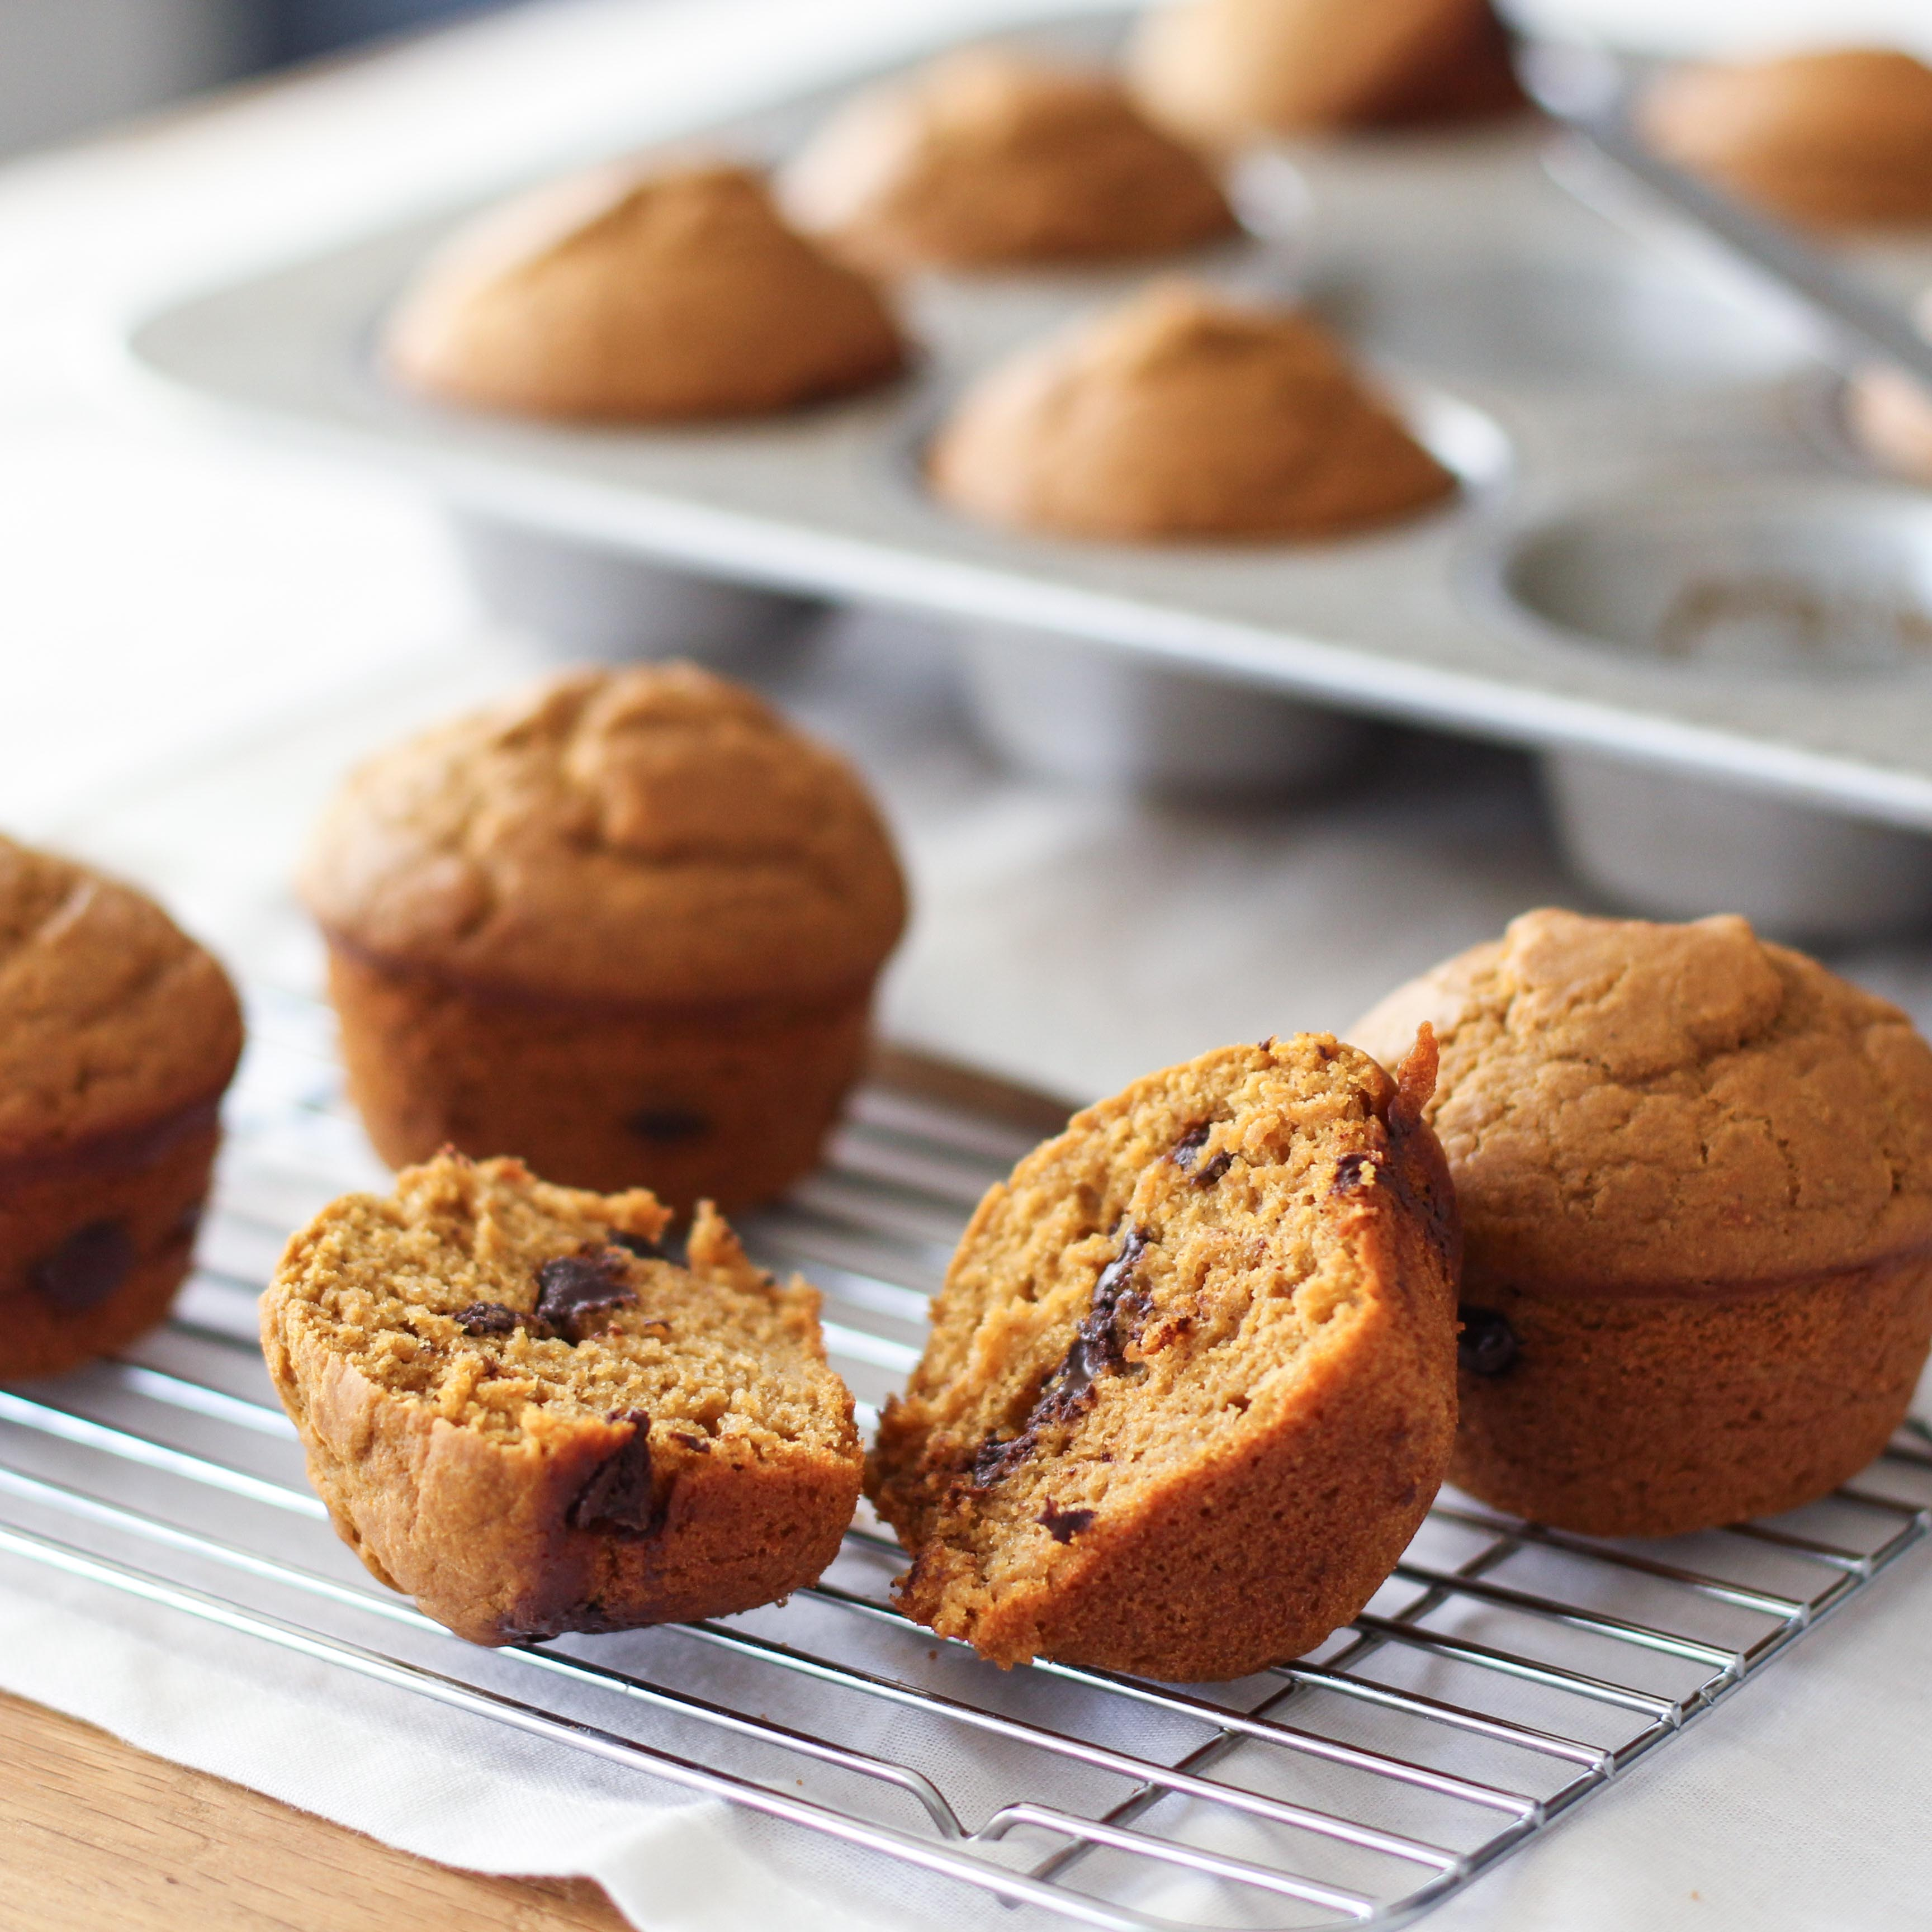 <p>Chocolate accents the pumpkin flavor of these muffins while prune concentrate enhances caramelization while also allowing for lower fat and sugar levels.</p>